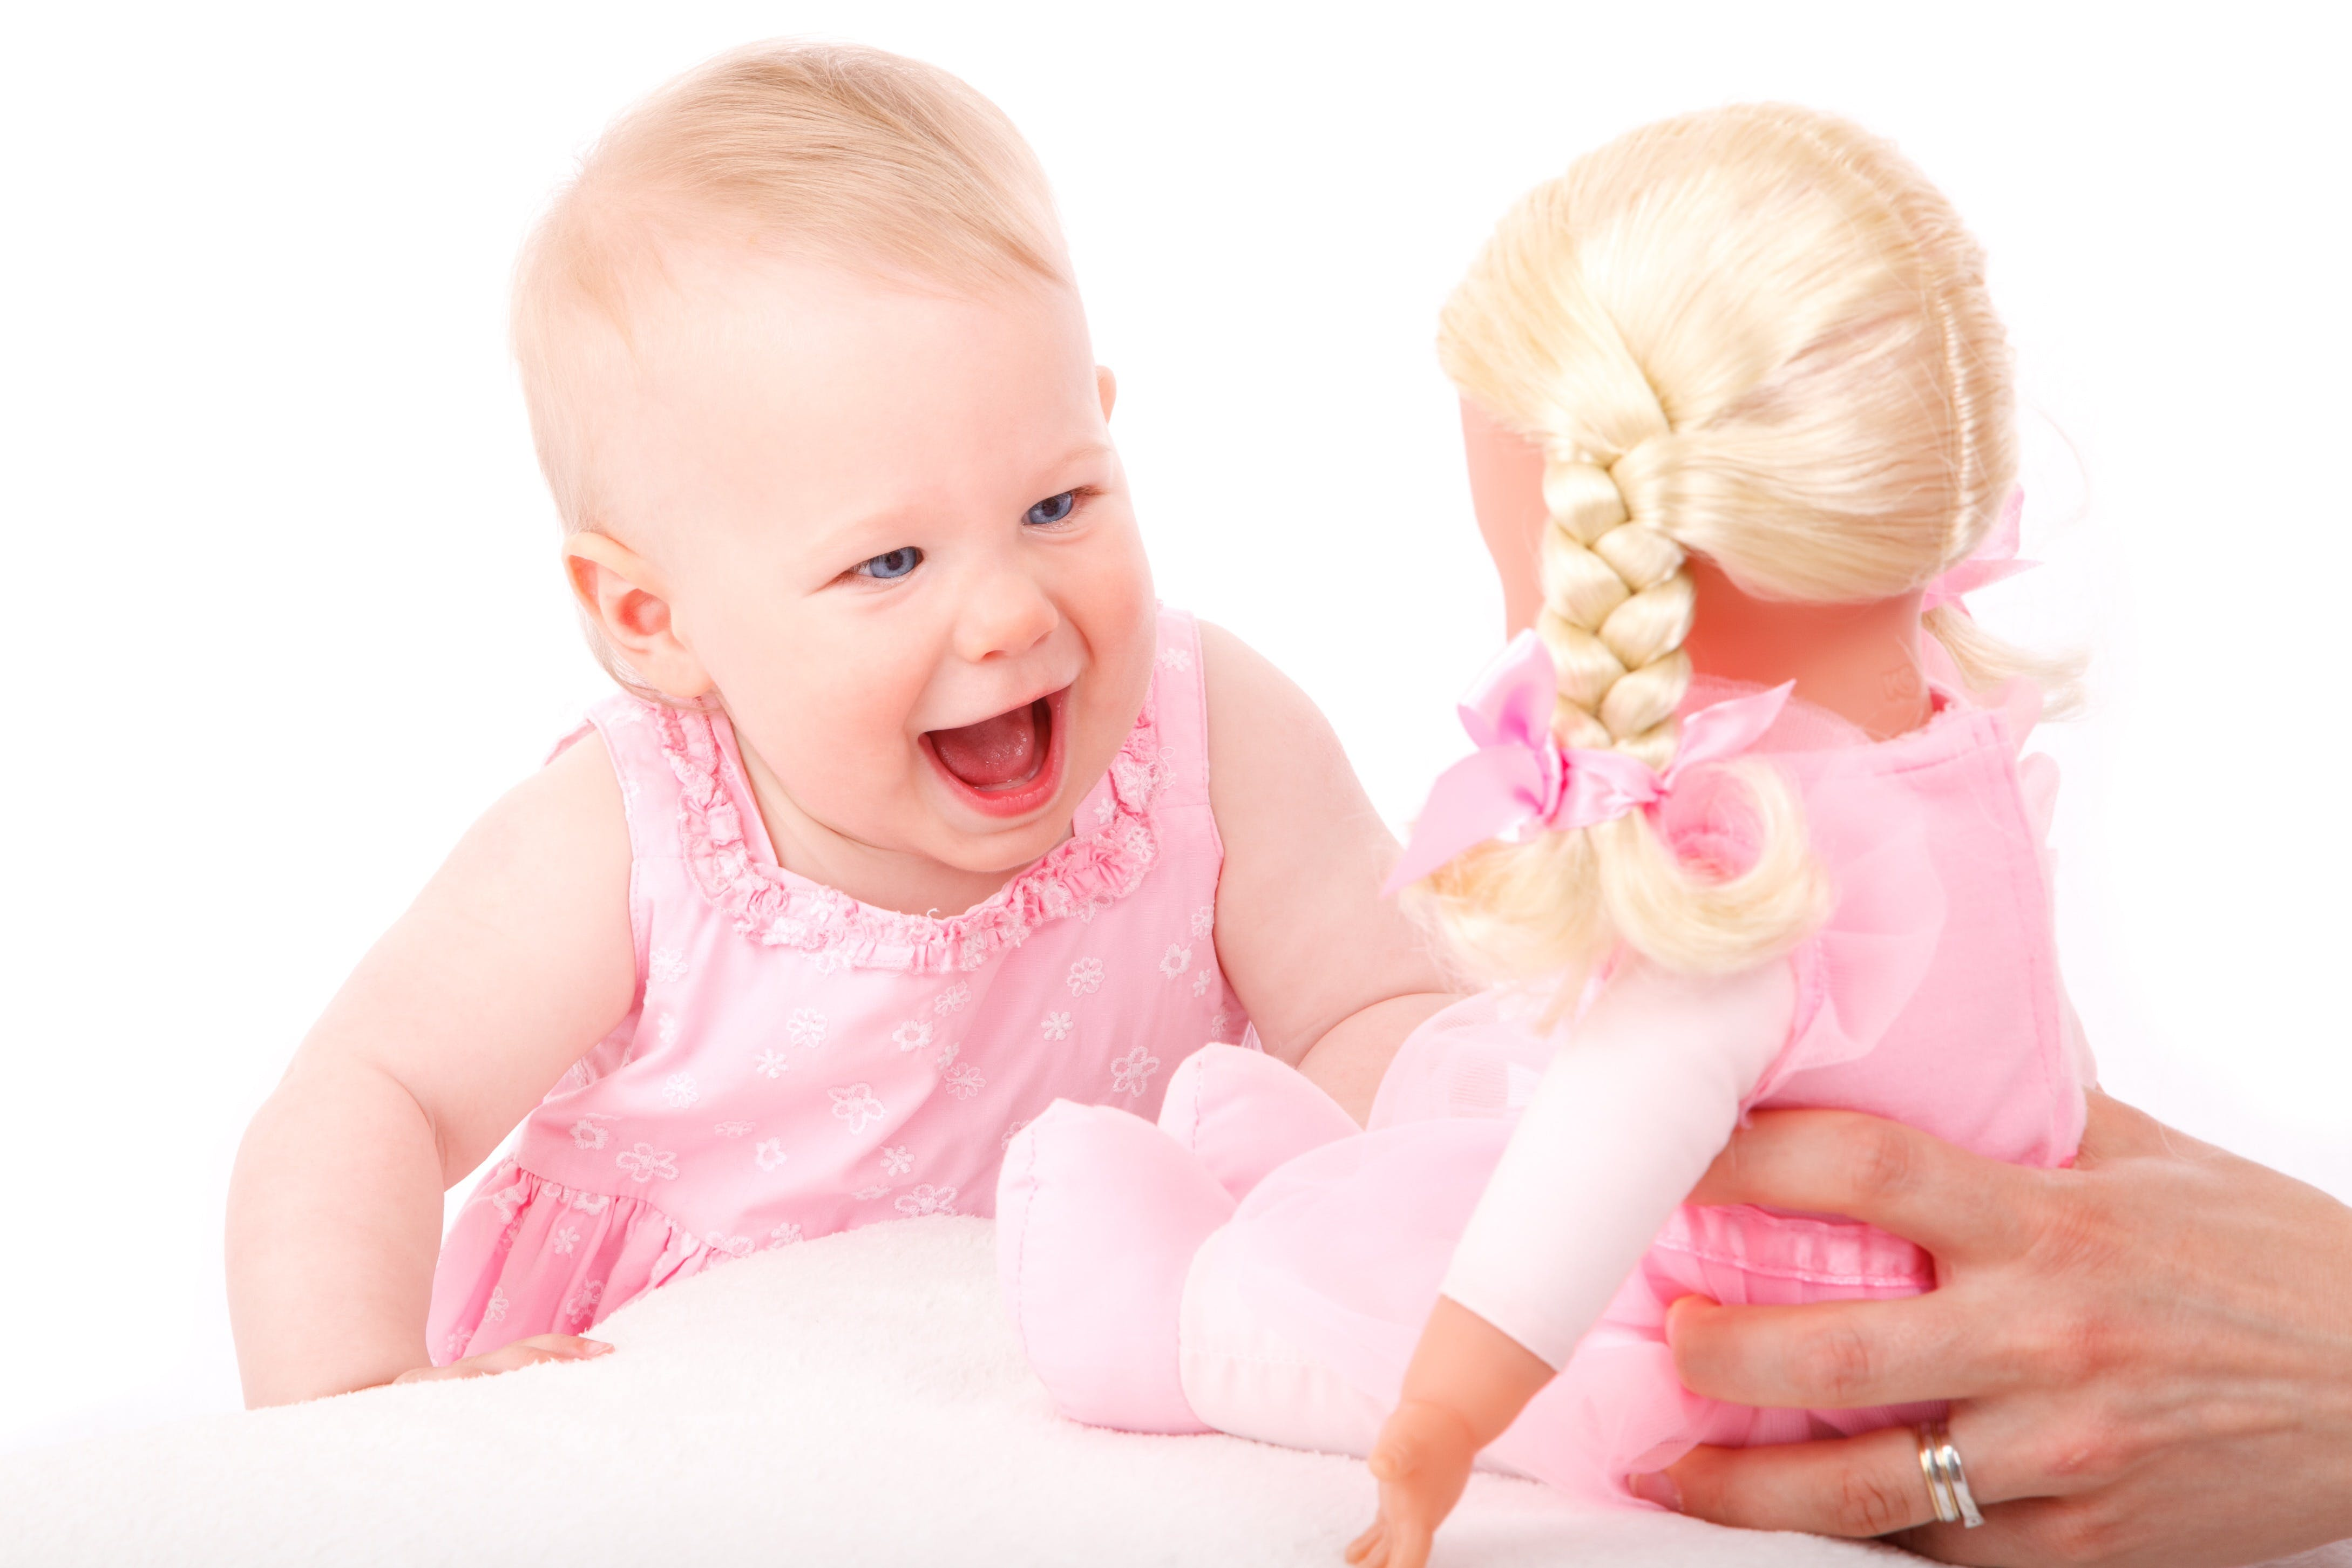 Baby's Pink Tank Dress and Doll Wearing Pink Dress